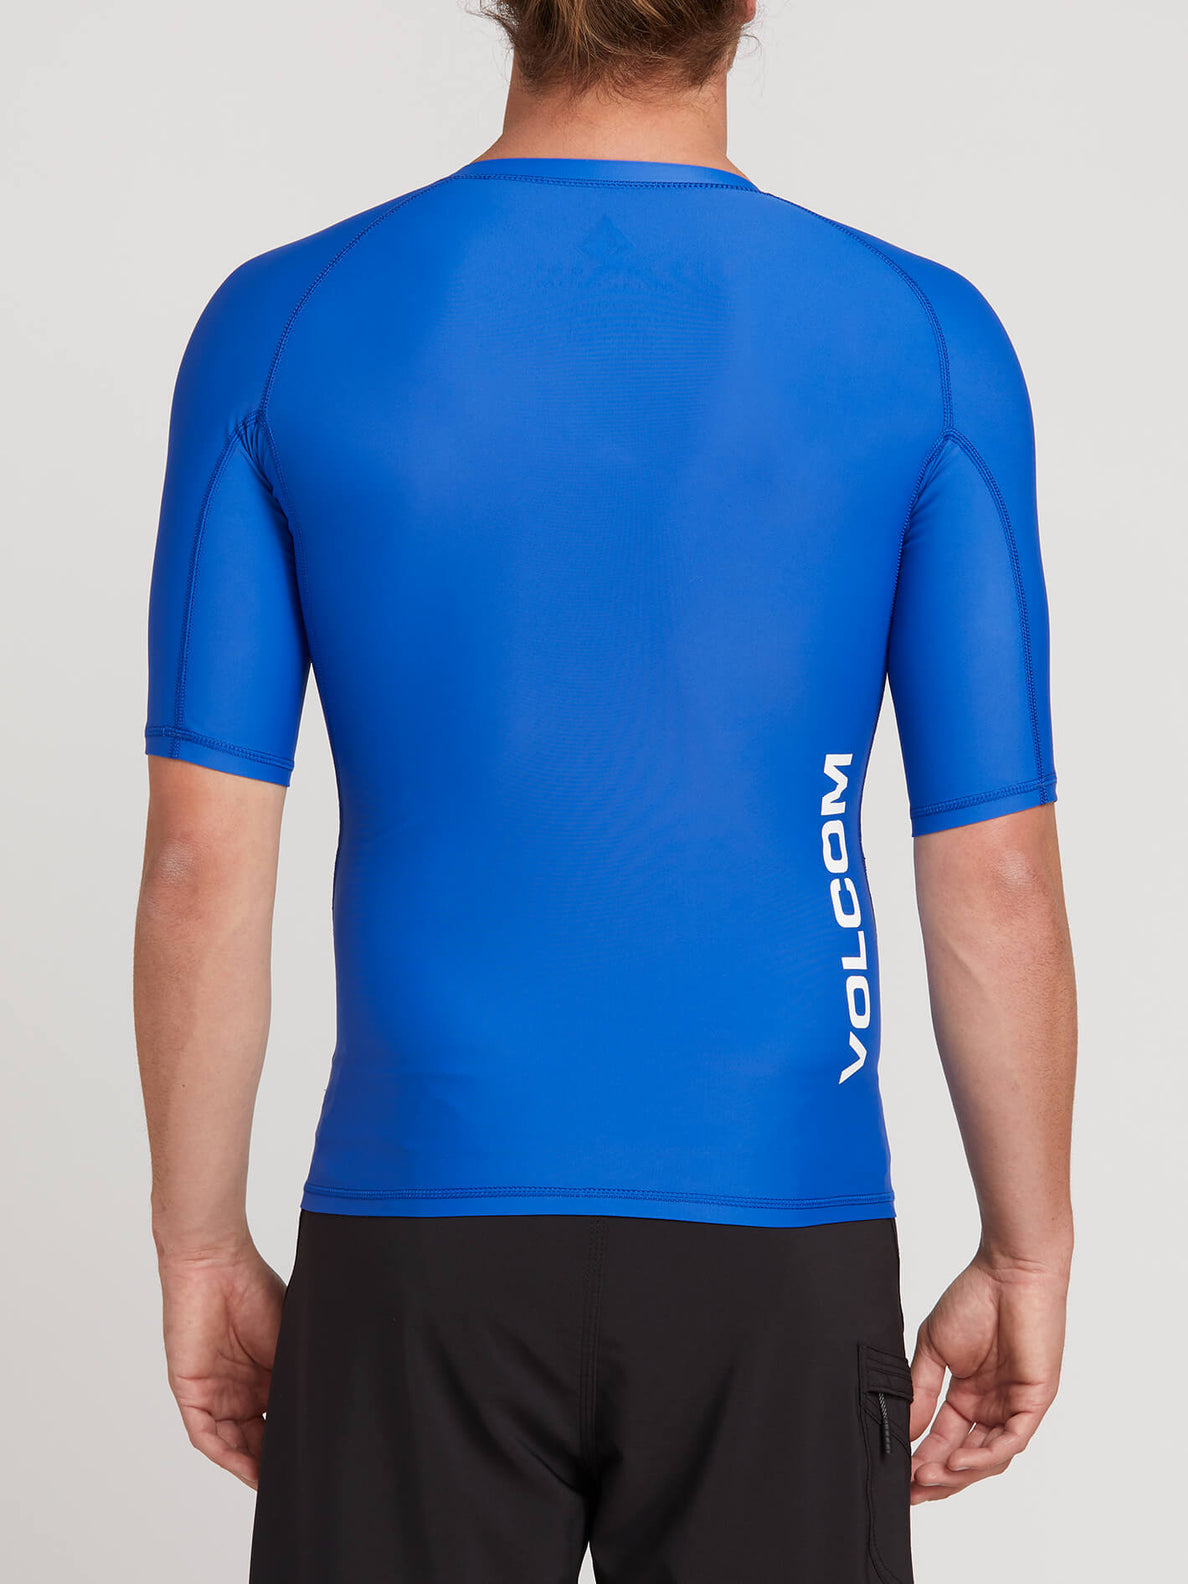 Lido Solid Short Sleeve Rashguard In Snow Royal, Back View